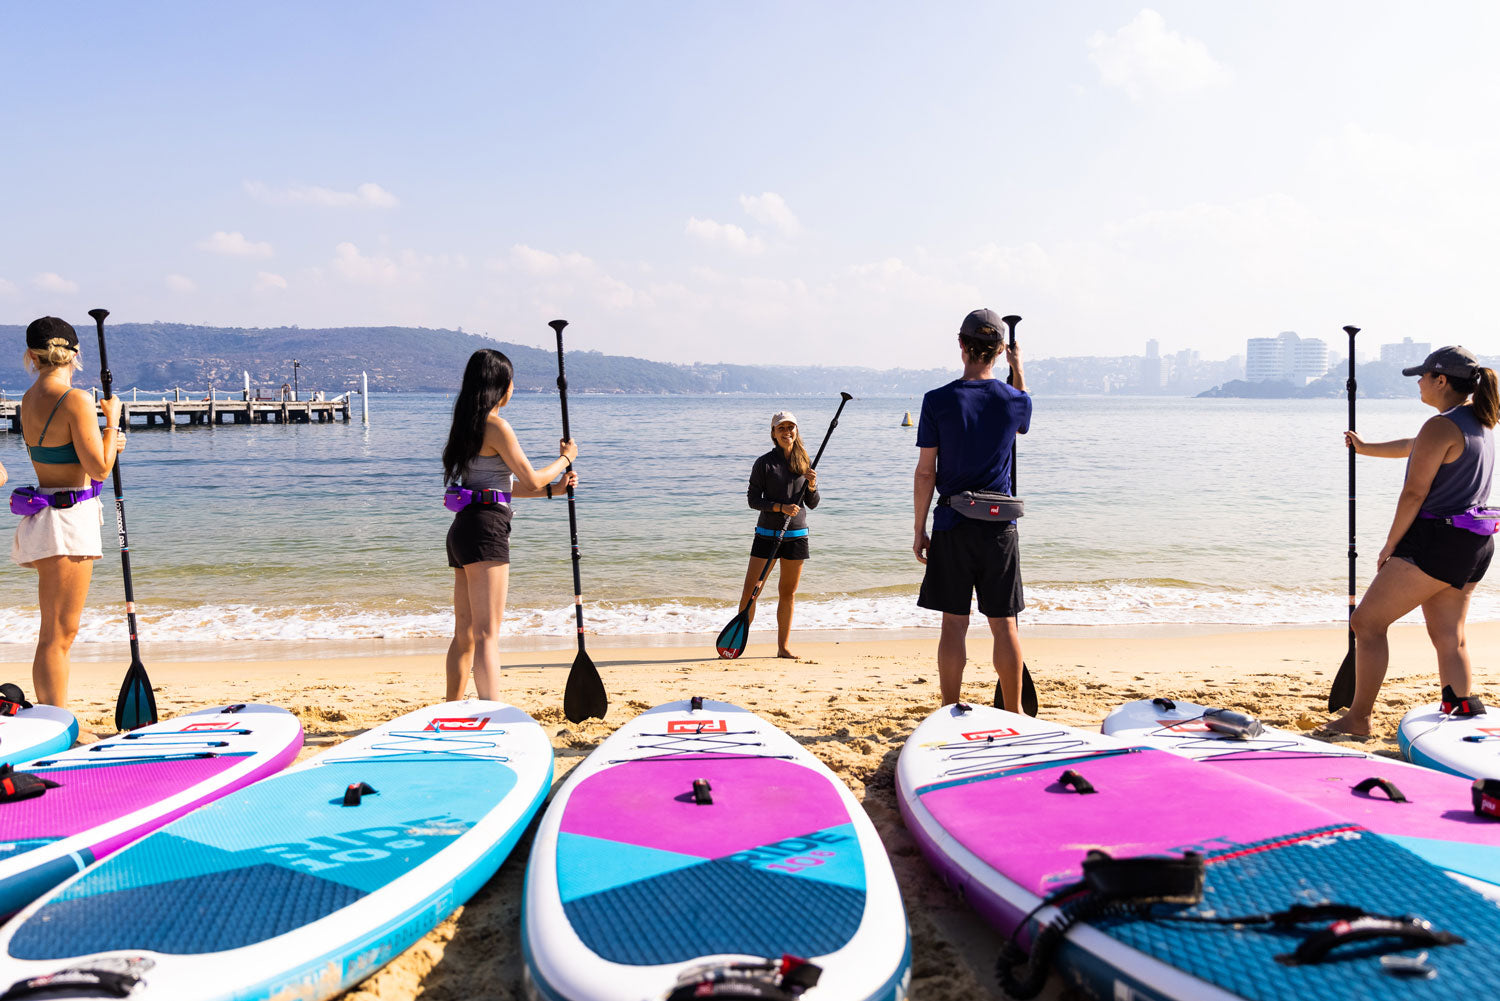 Paddlers listen to instructor on beach